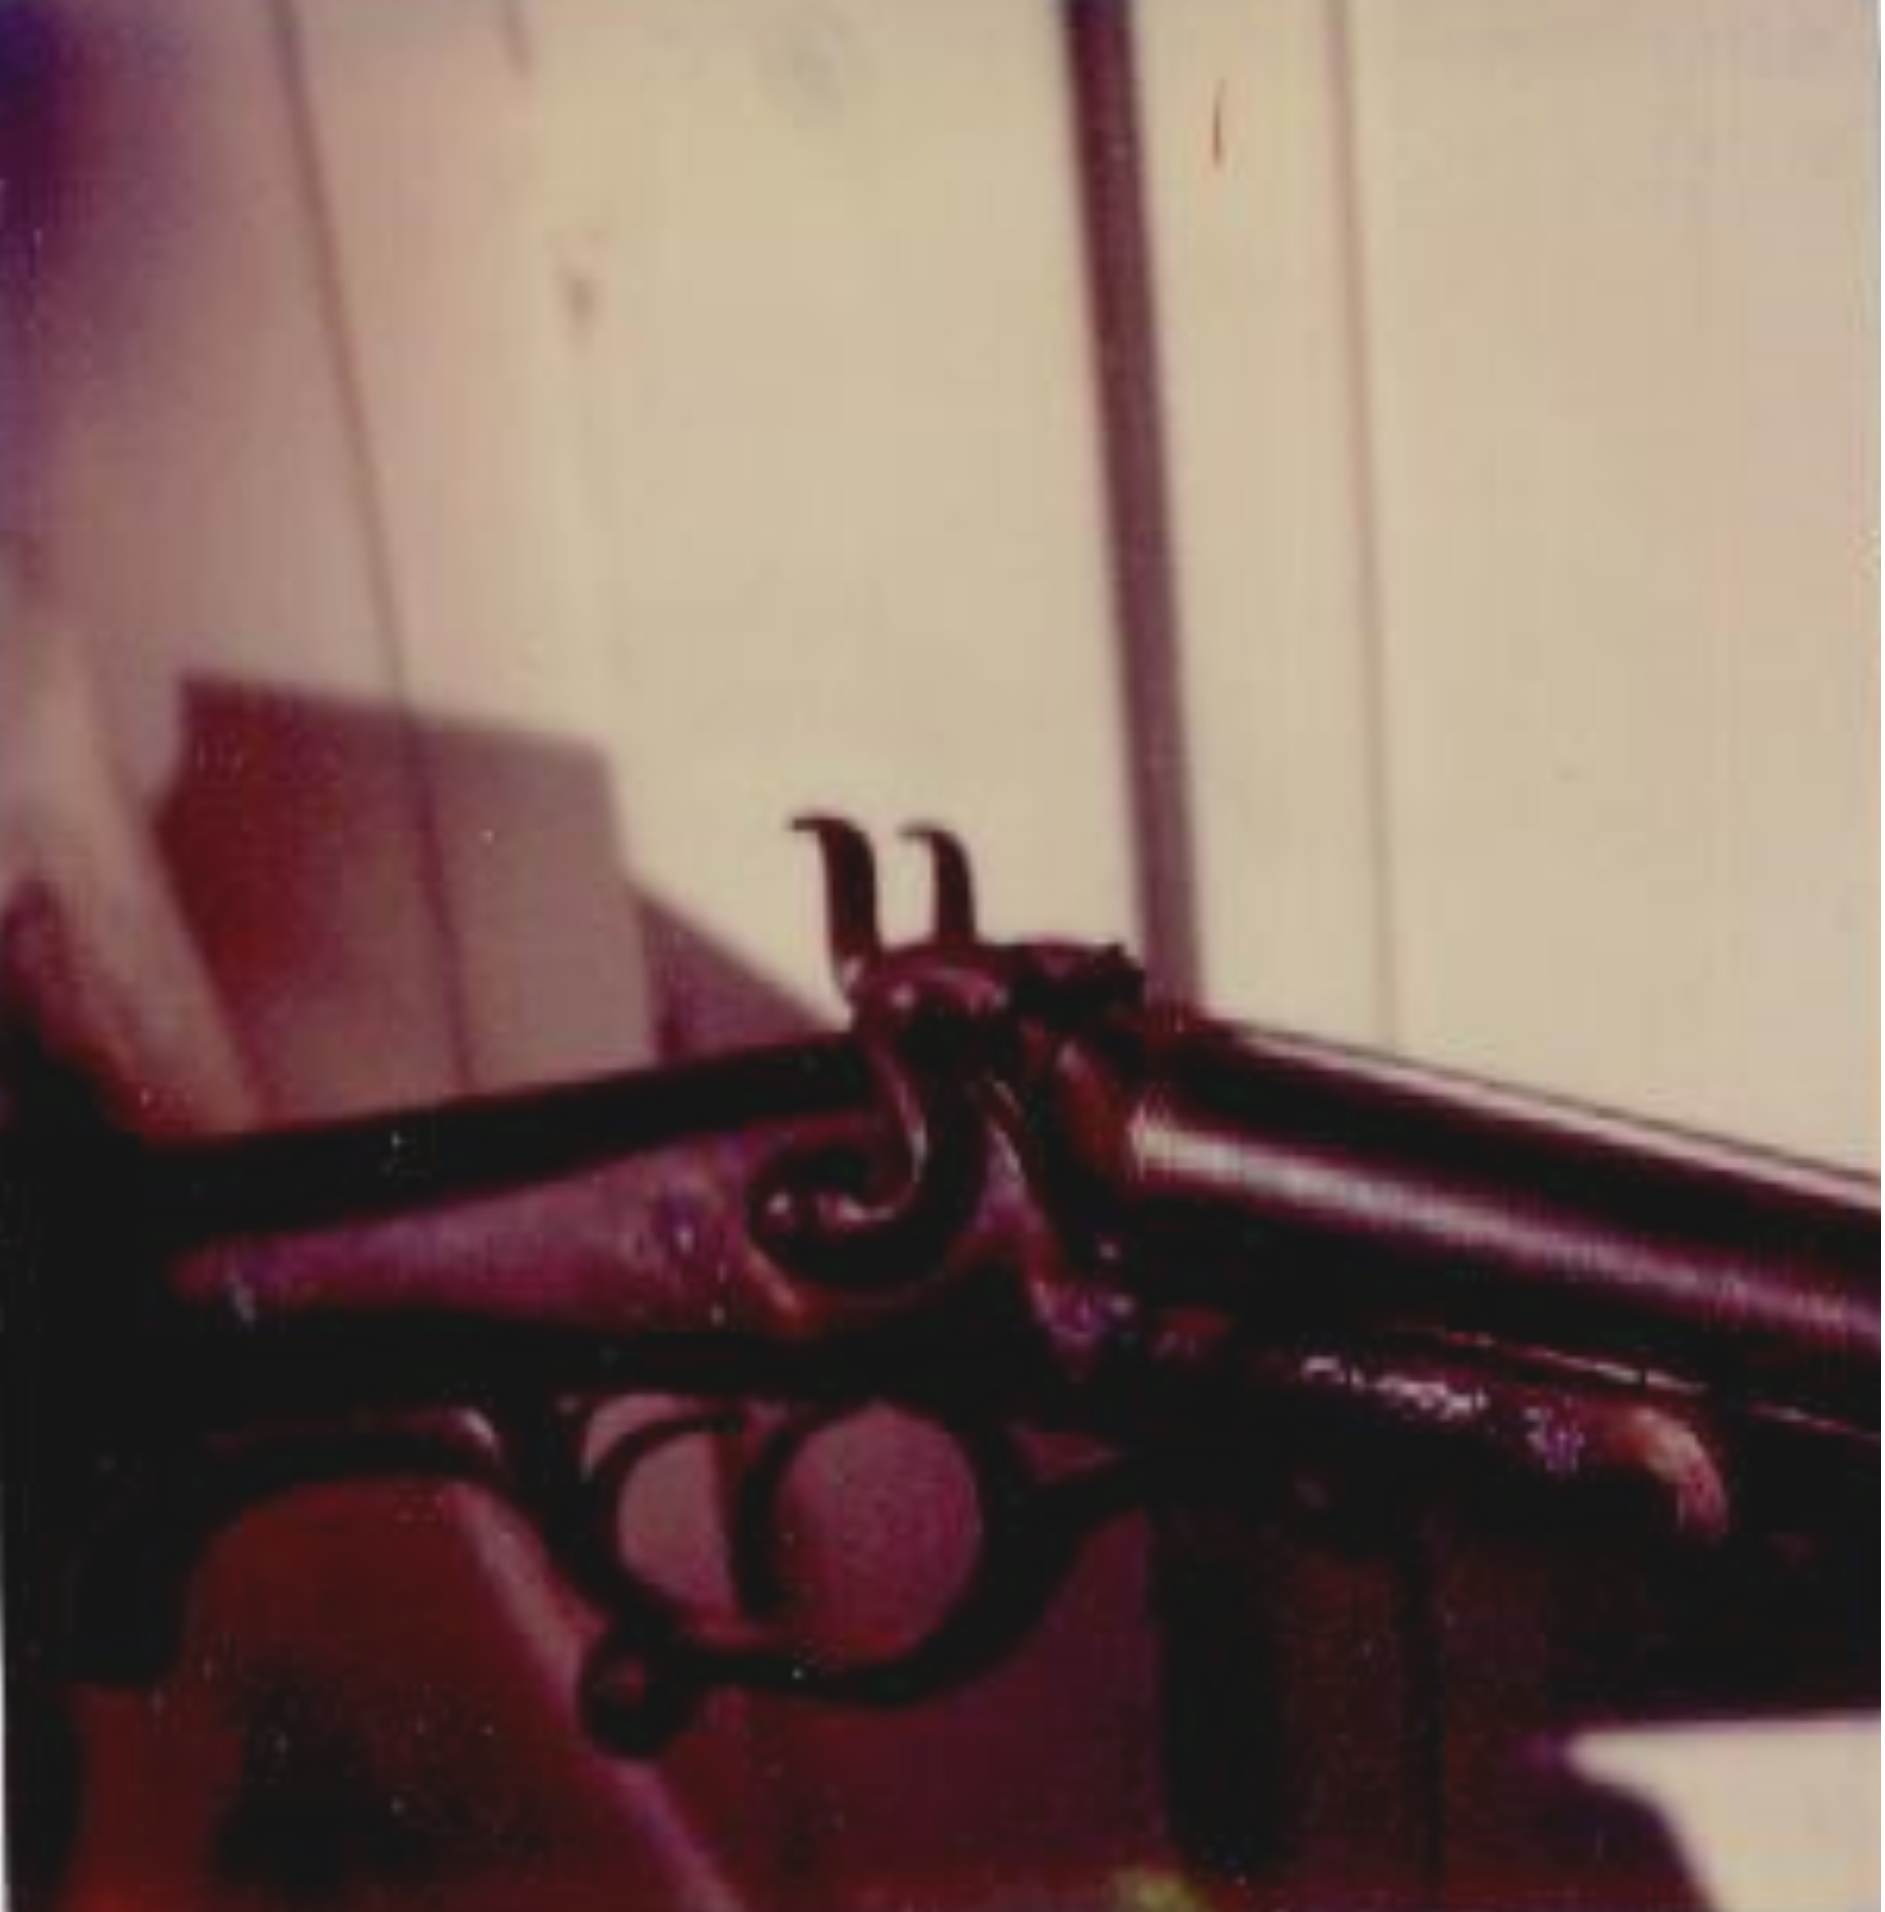 Photos of the Damascus-barreled double-barreled shotgun sent by Al Stump to Howard G. Smith.